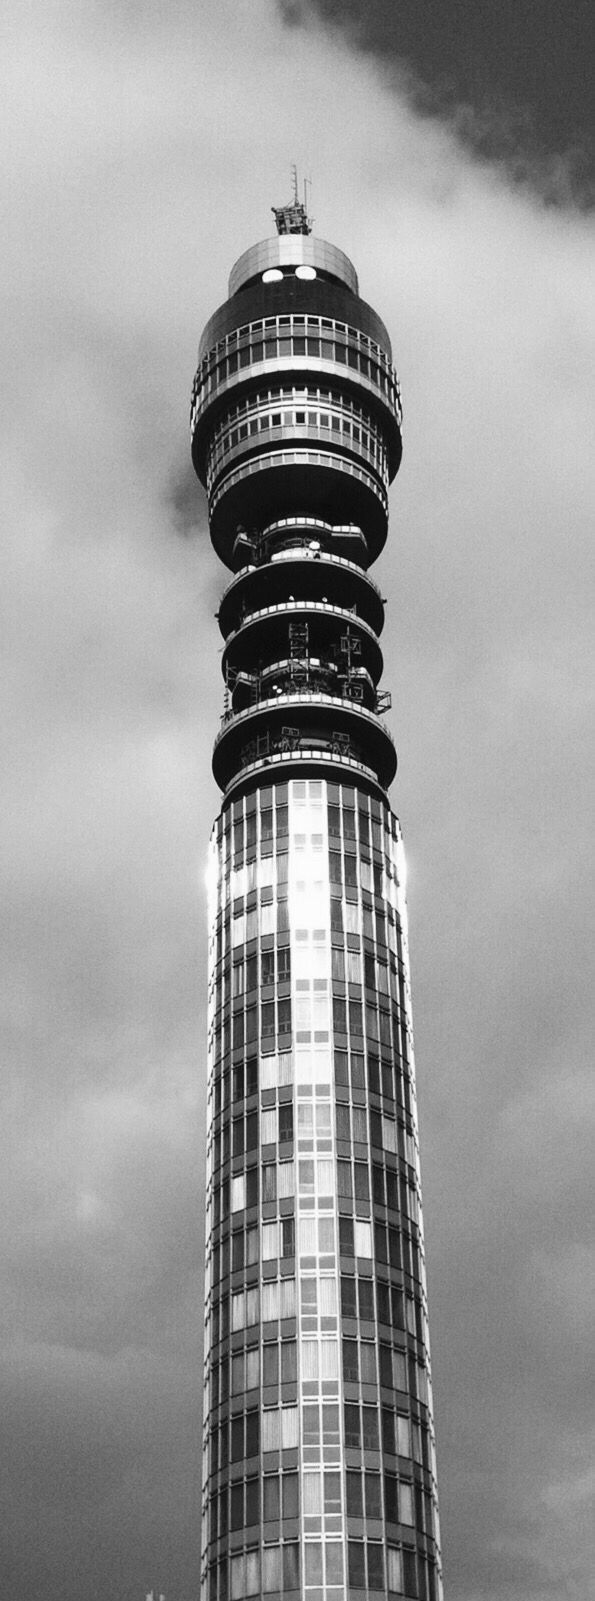 BT TOWER   FITZROVIA   CITY OF WESTMINSTER   LONDON   ENGLAND: *Former Names: London Telecom Tower; British Telecom Tower; Post Office Tower*